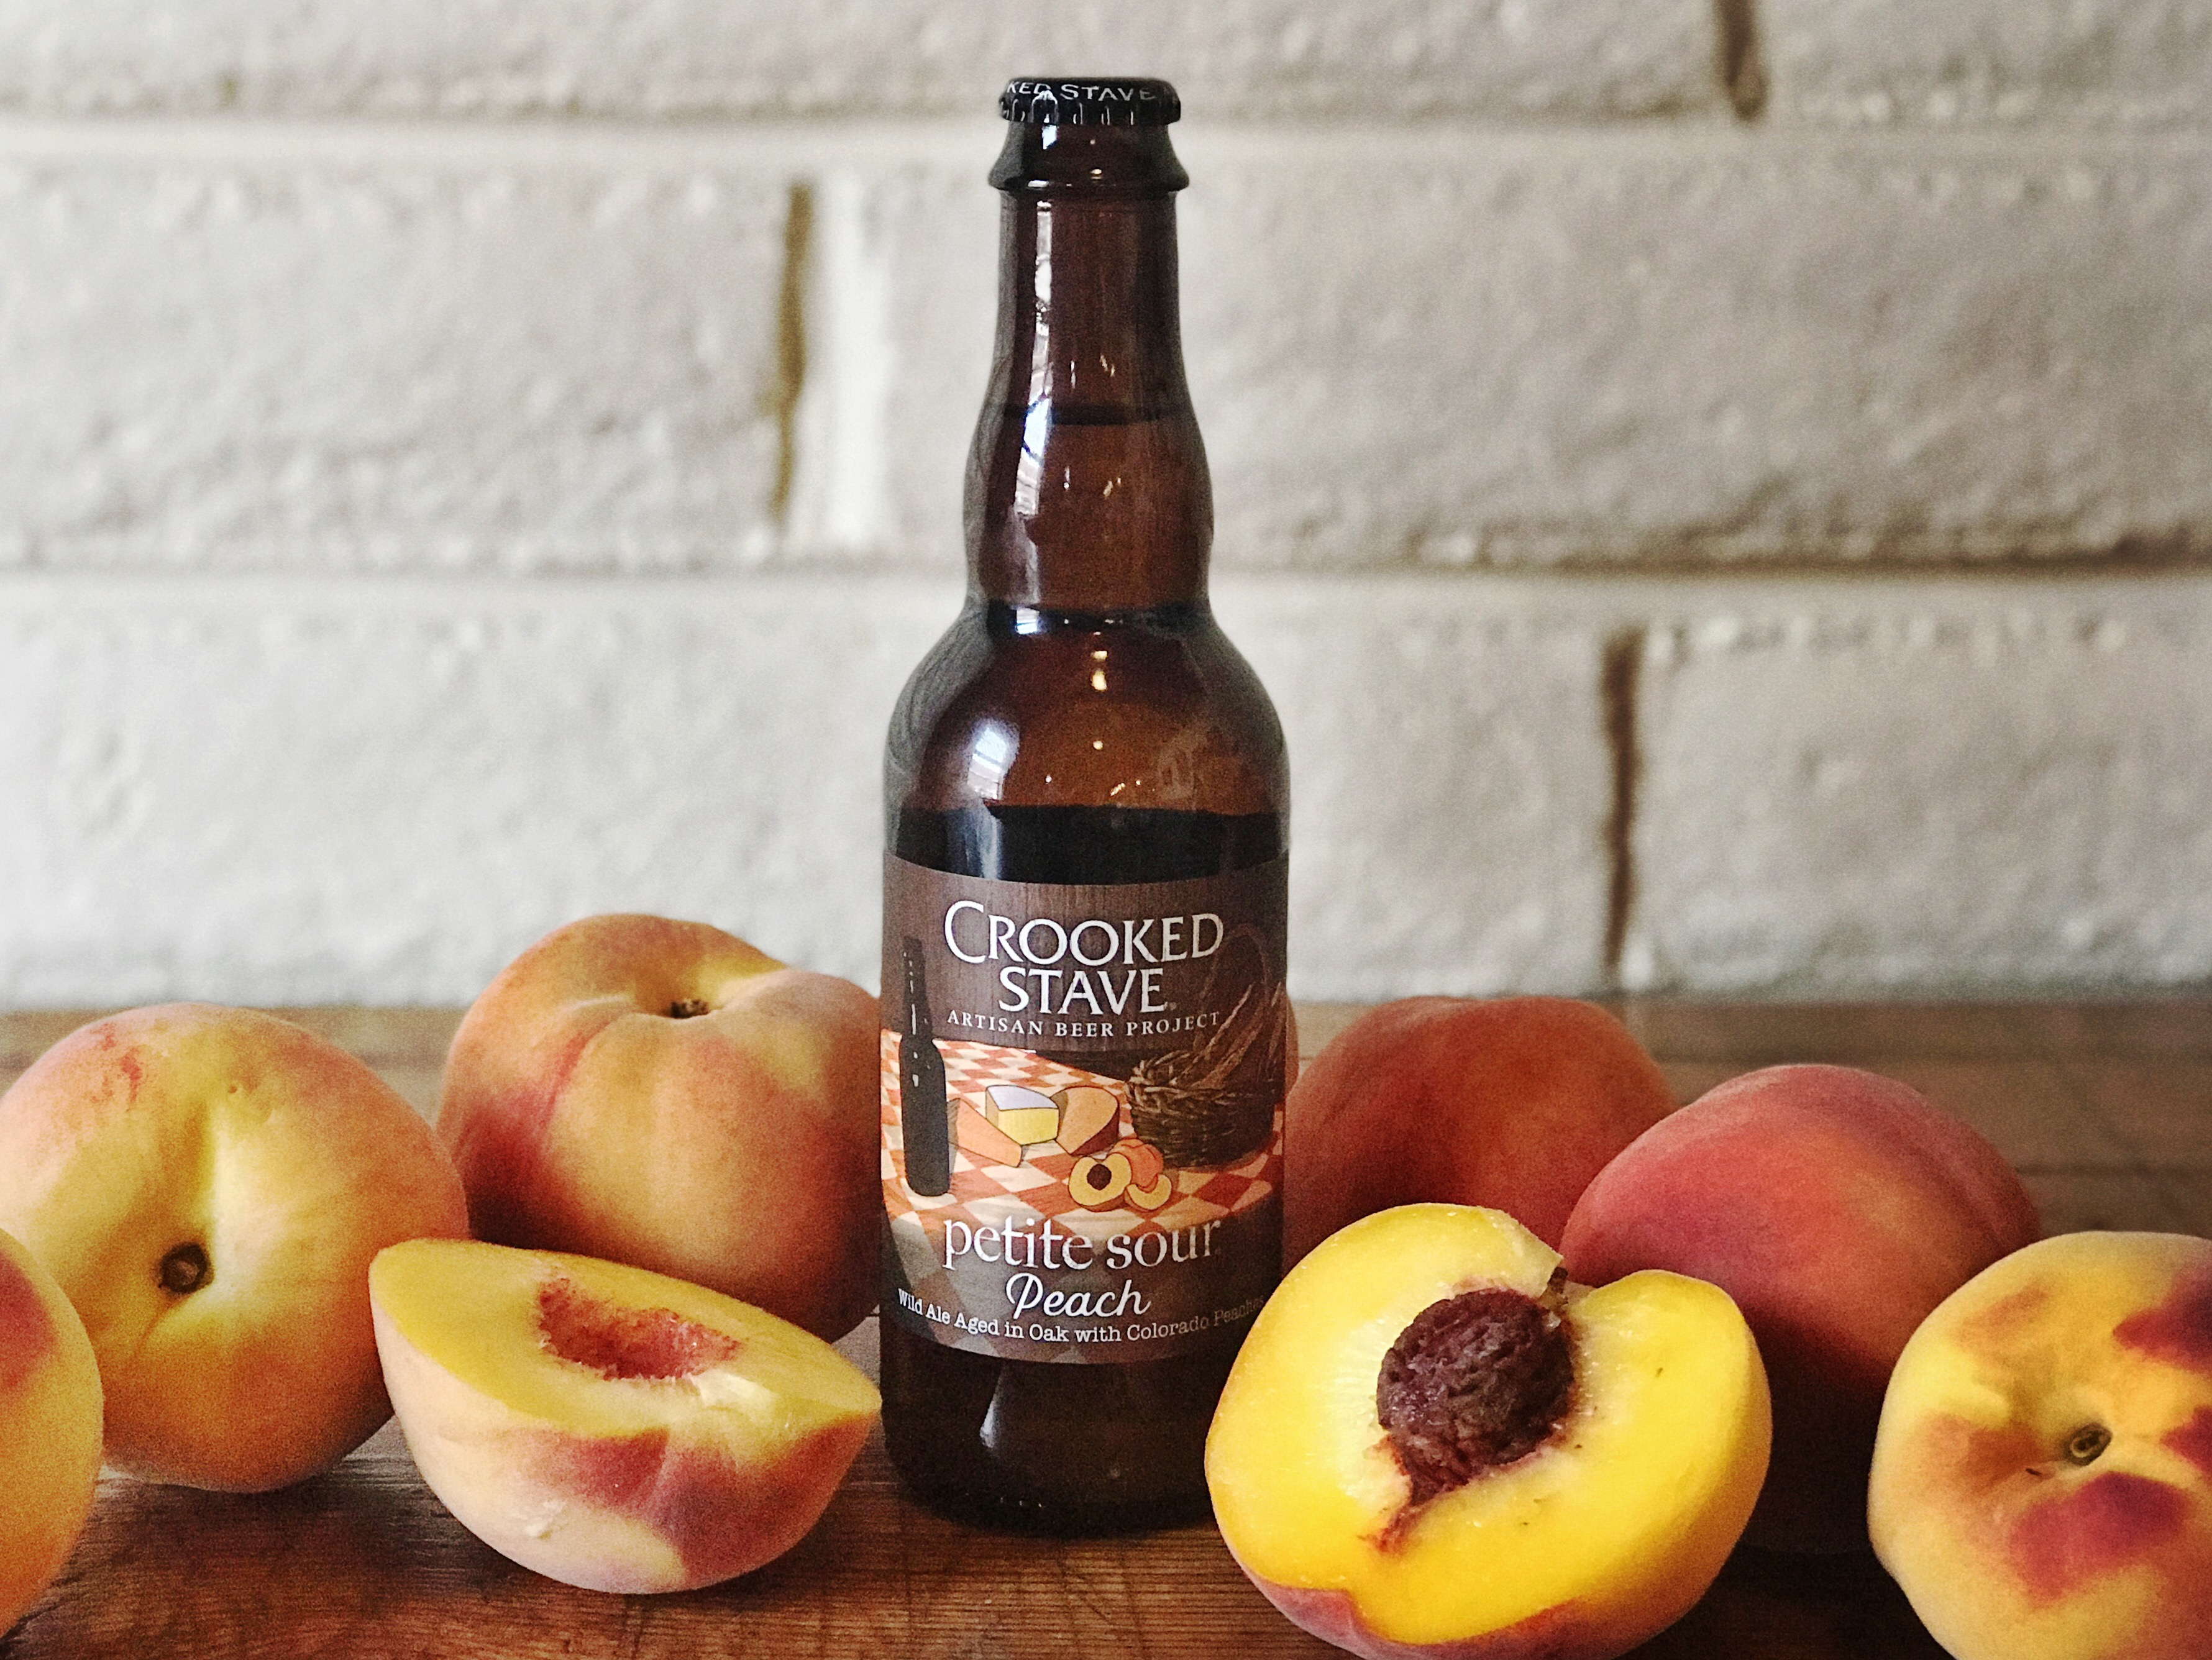 Crooked Stave of Colorado uses fruit sourced from organic growers within its home state.